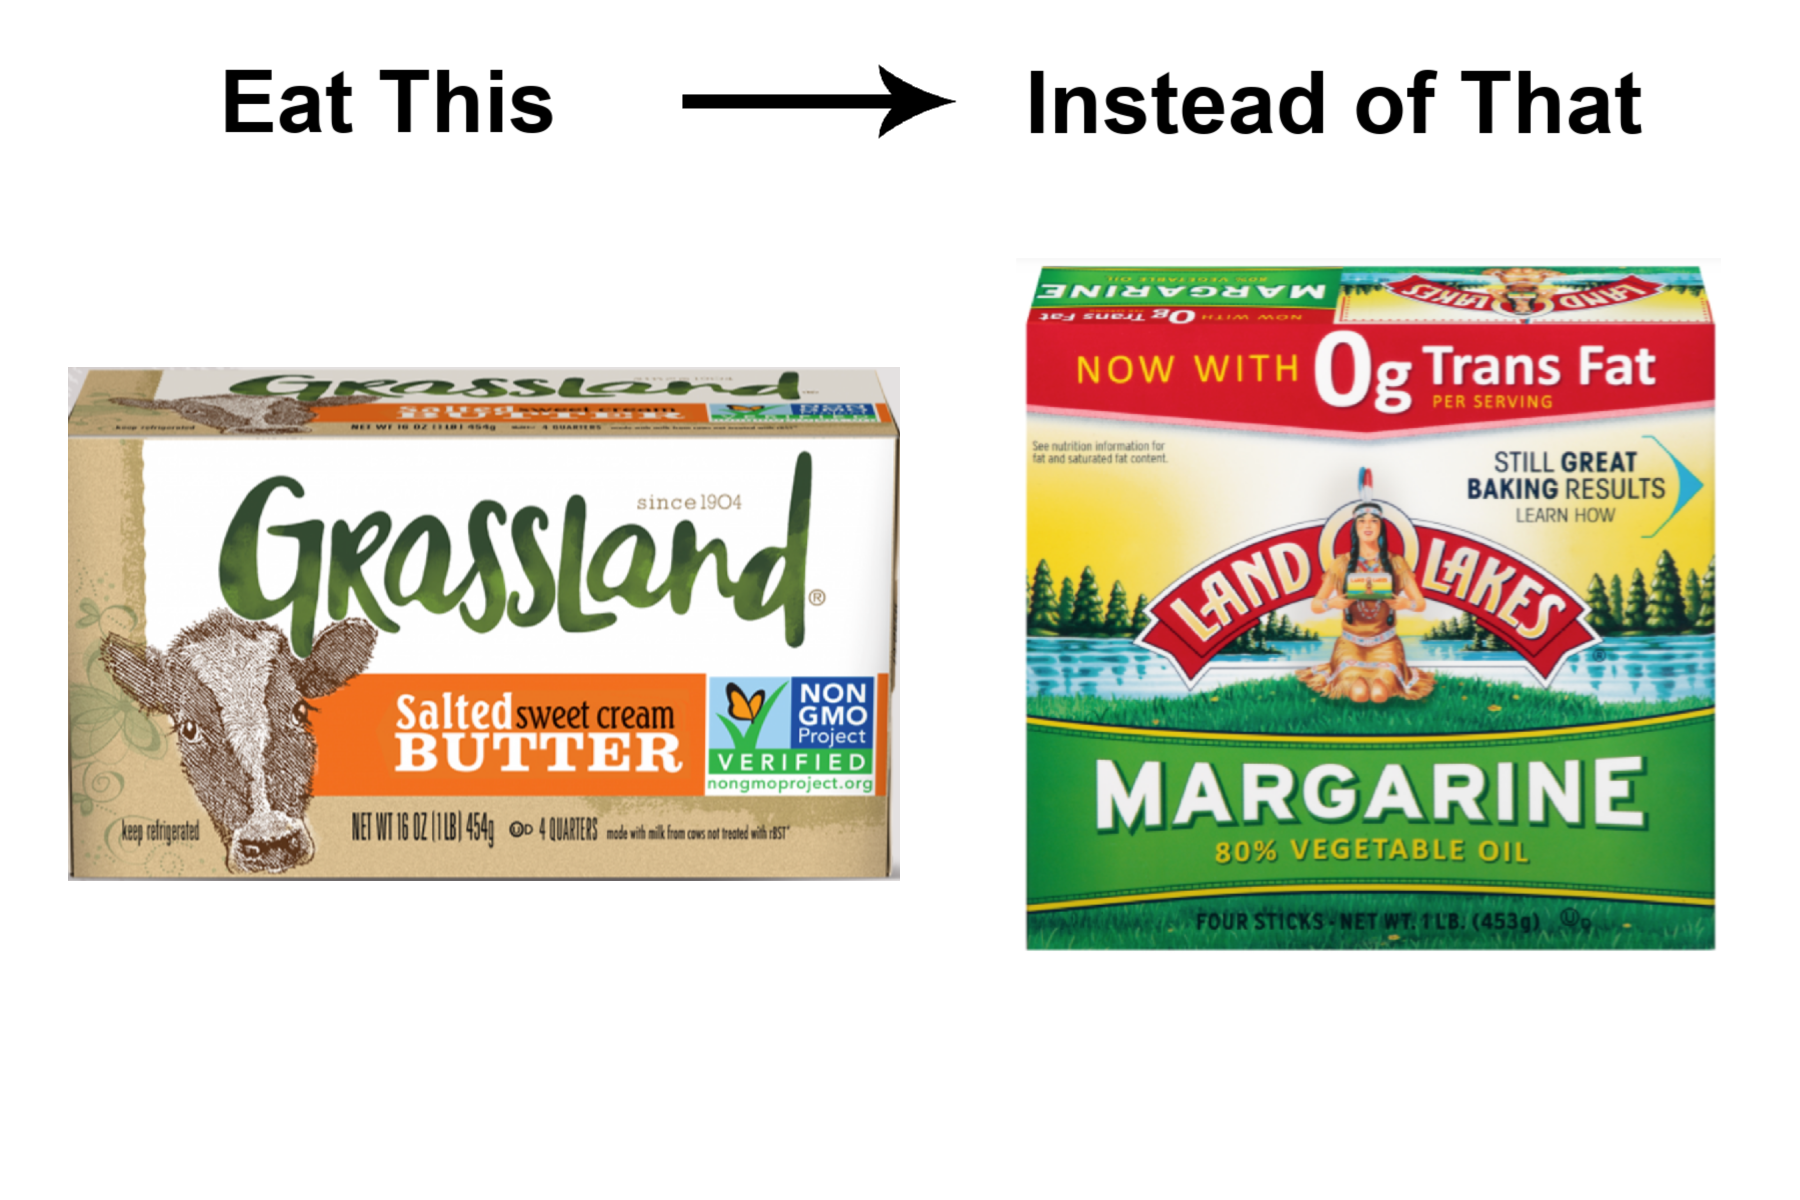 Butter instead of Margarine